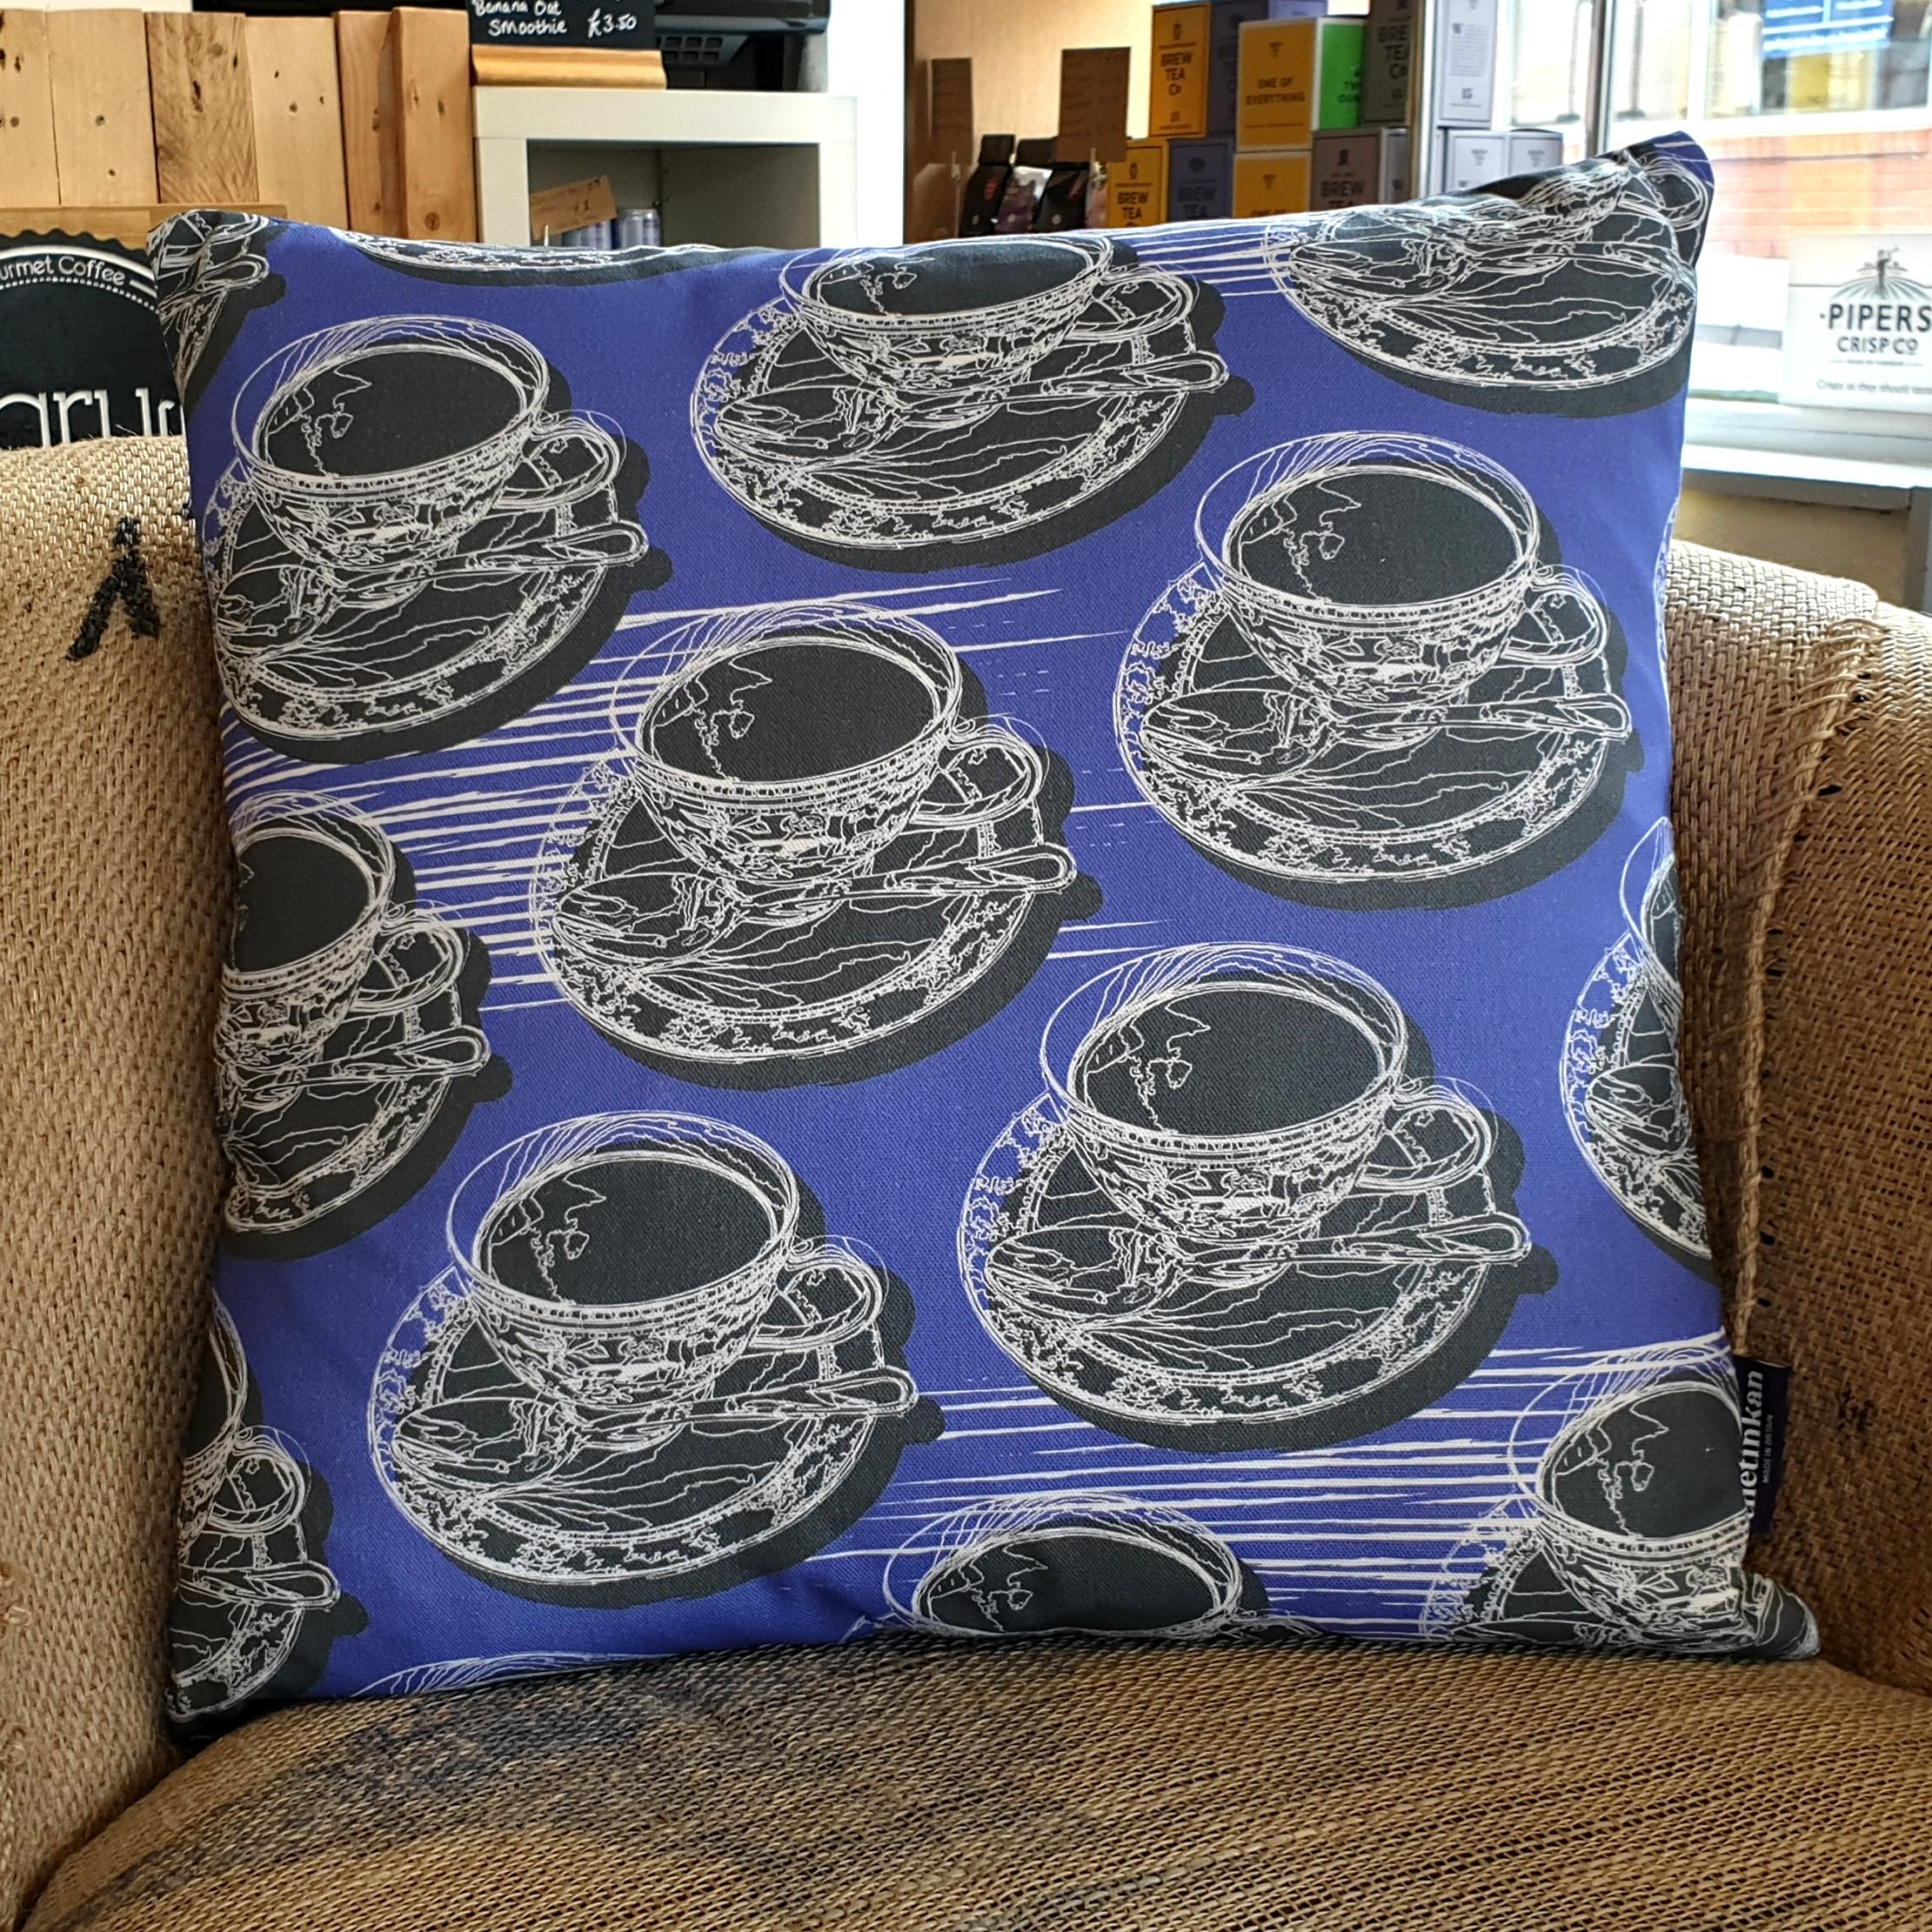 Double-sided violet purple 45cm square retro Afternoon Tea cushion with artistic white shards designed by thetinkan. White traced outline of multiple British teacups and saucers each colour filled in charcoal grey. Available with an optional luxury cushion inner pad. VIEW PRODUCT >>